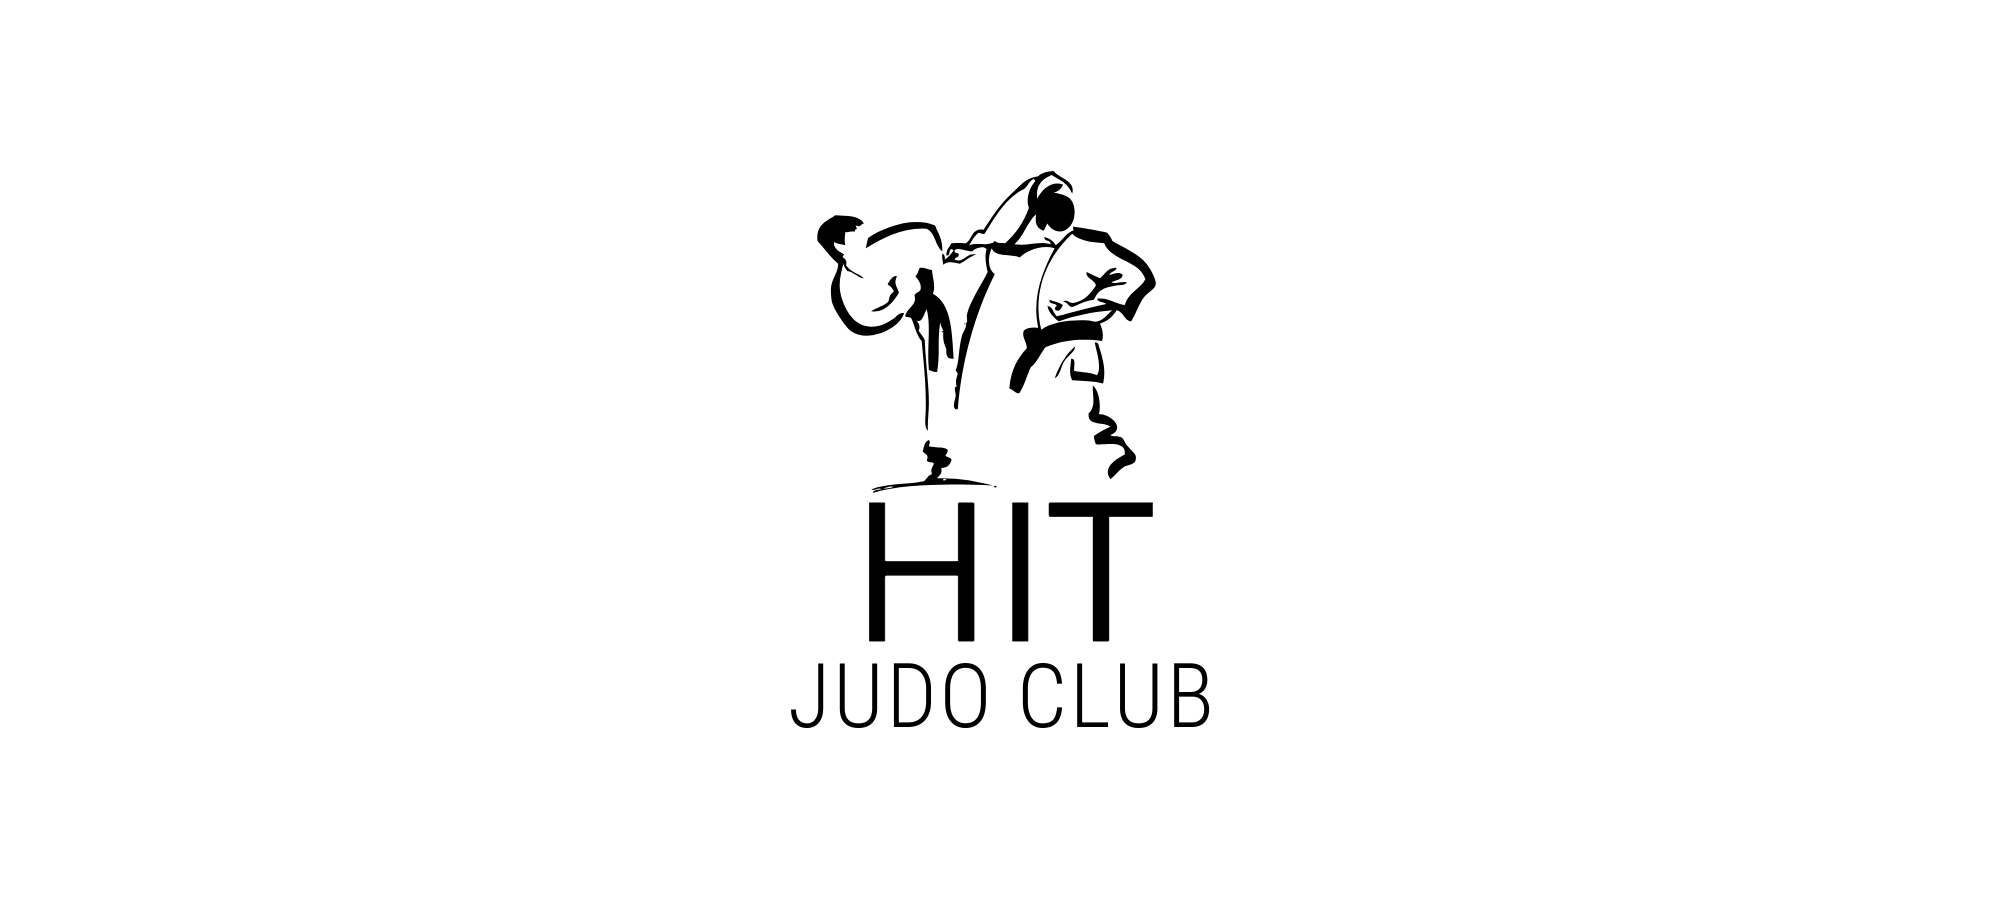 Hit Judo Club Logaster logo